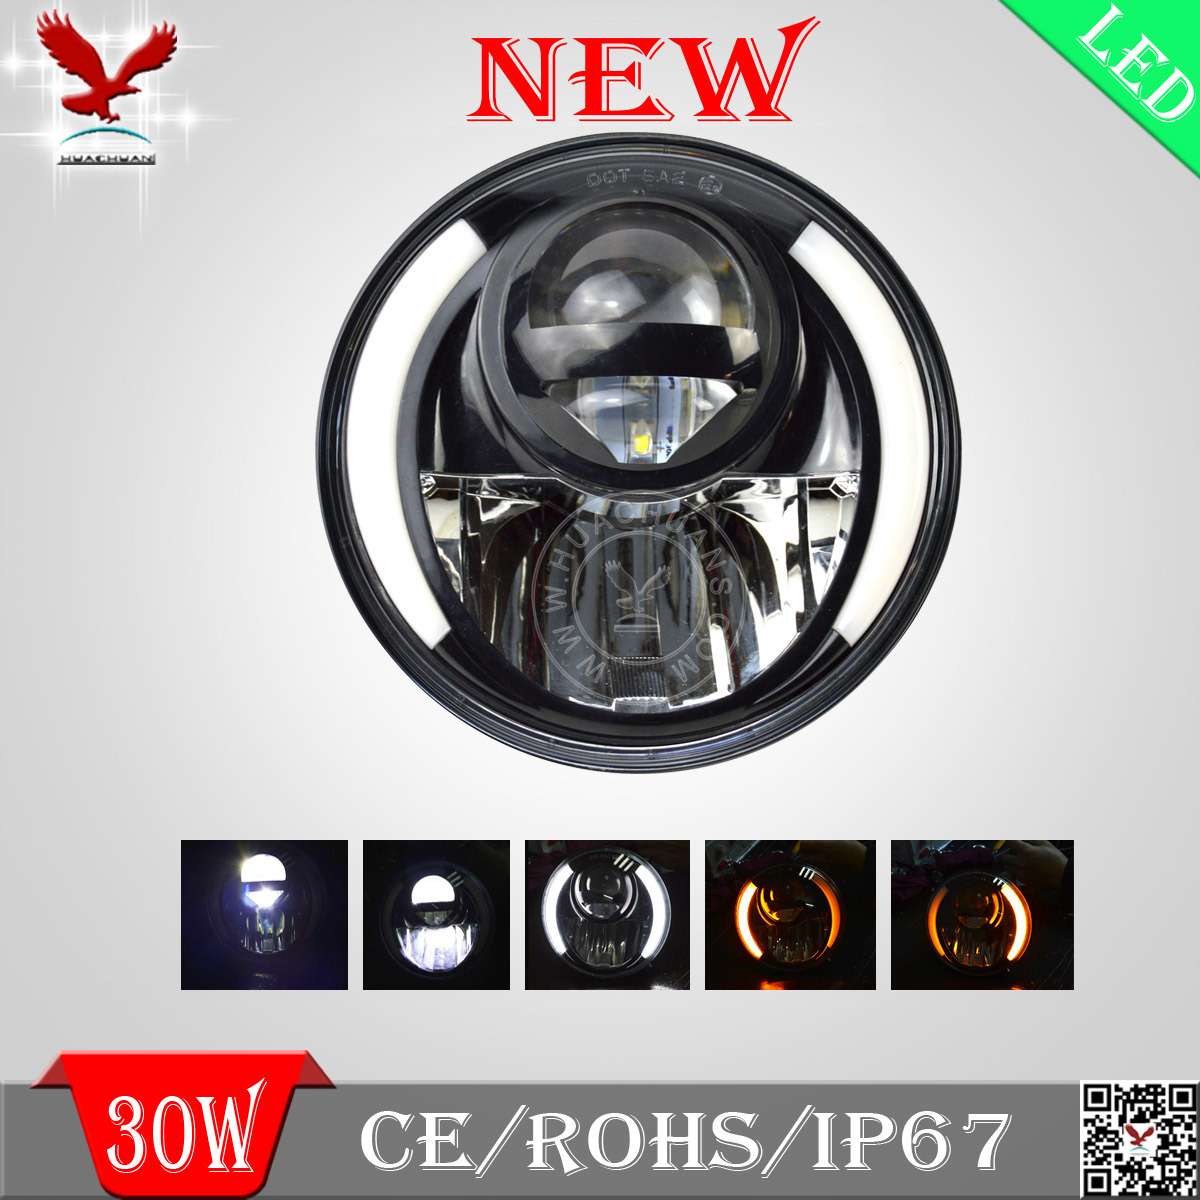 China Led Headlight Offroad Light Unique Beam Patterm Perfect Jeep Wrangler Off Road Lights Shape And Cutting Line For Vechiles Truck Harley Motorcyclejeep